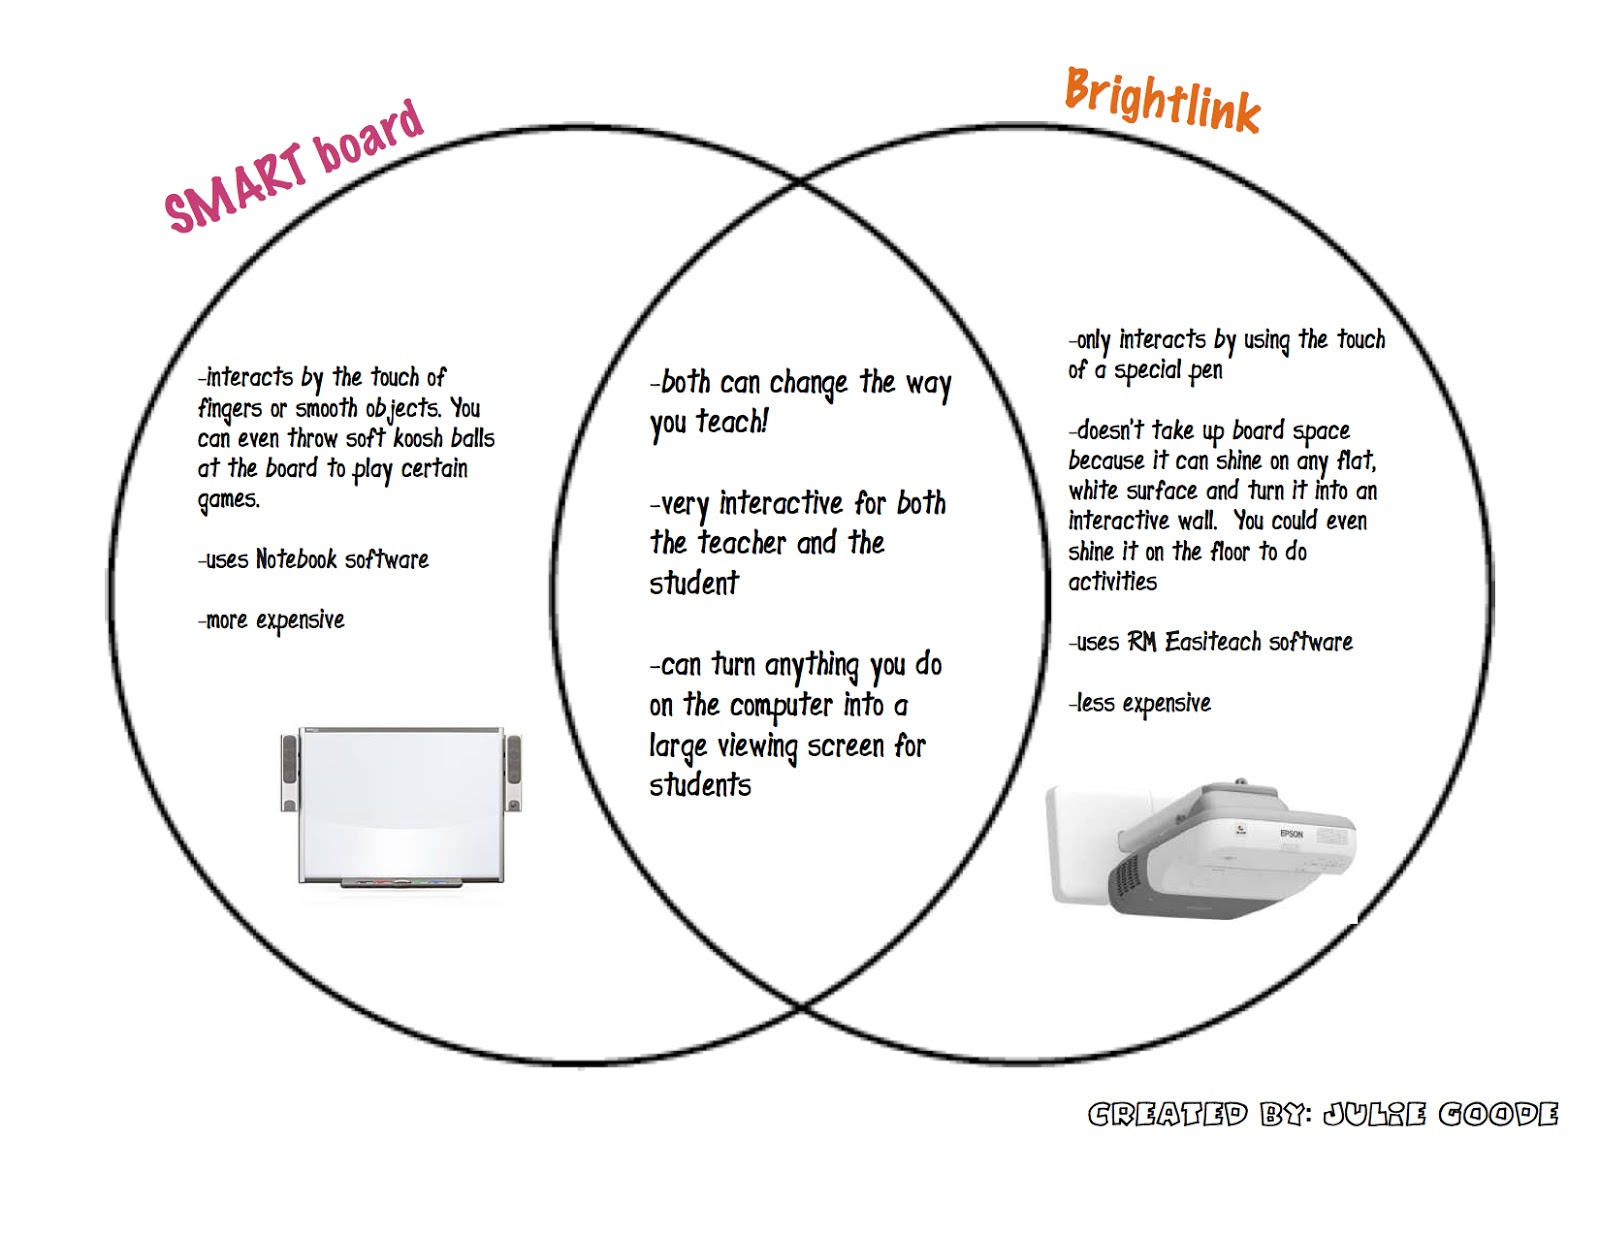 Smart Board Vs Brightlink